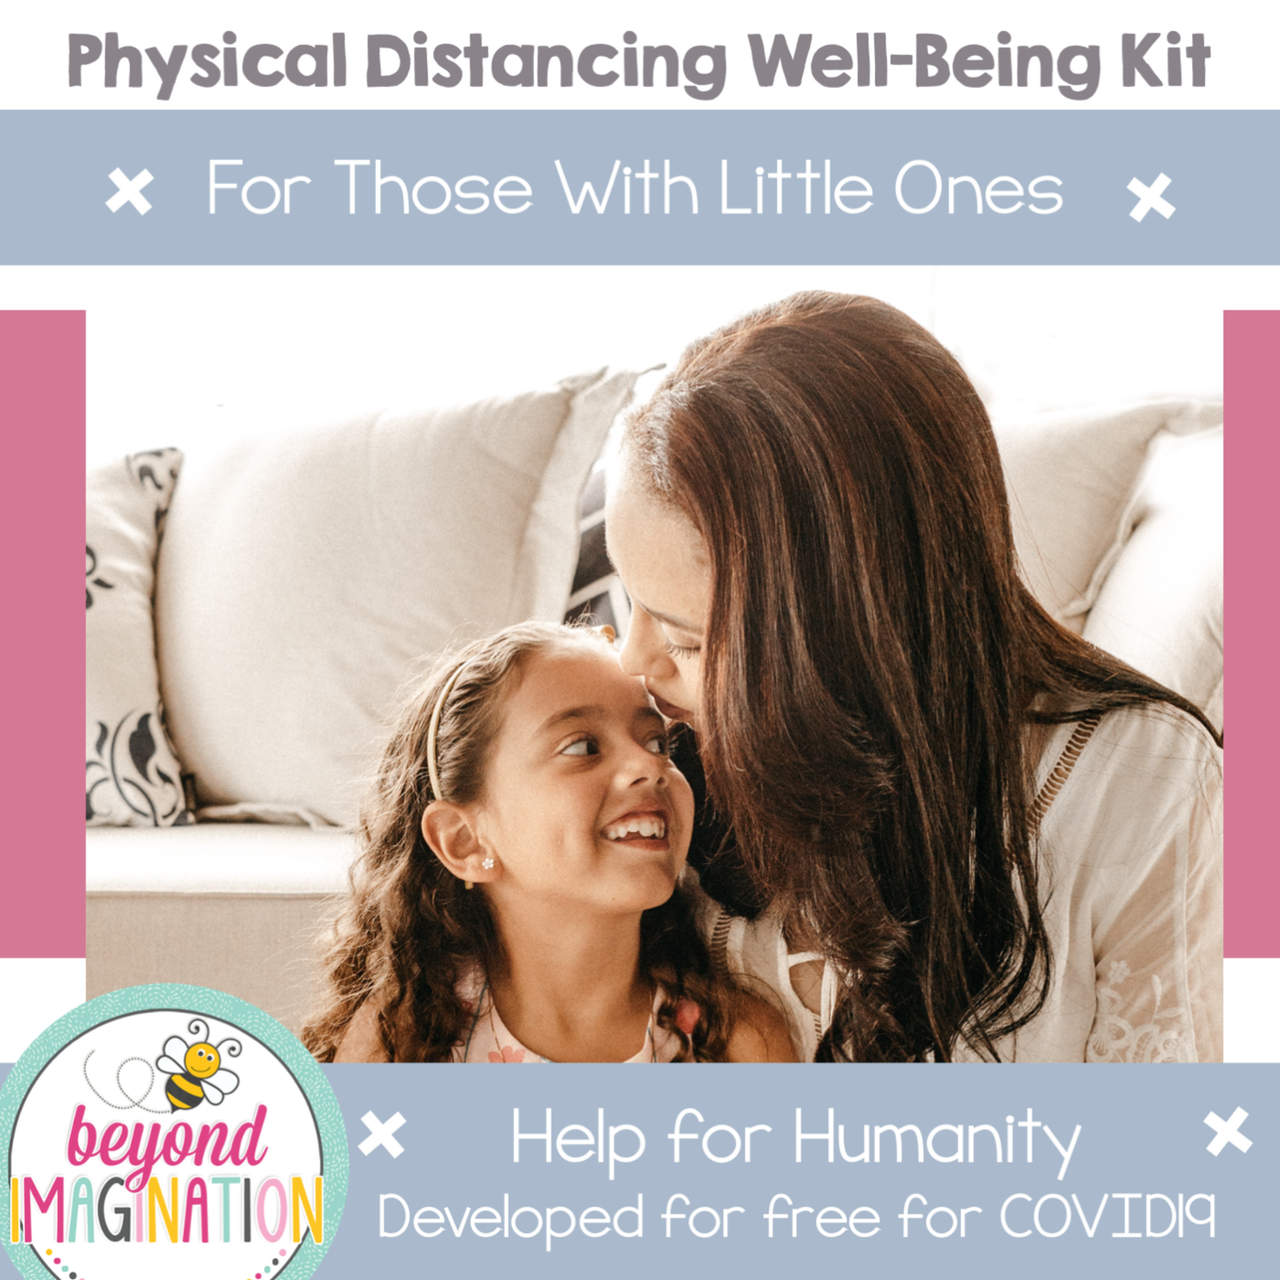 Little Ones Physical Distancing Well-Being Kit Help for Humanity COVID-19